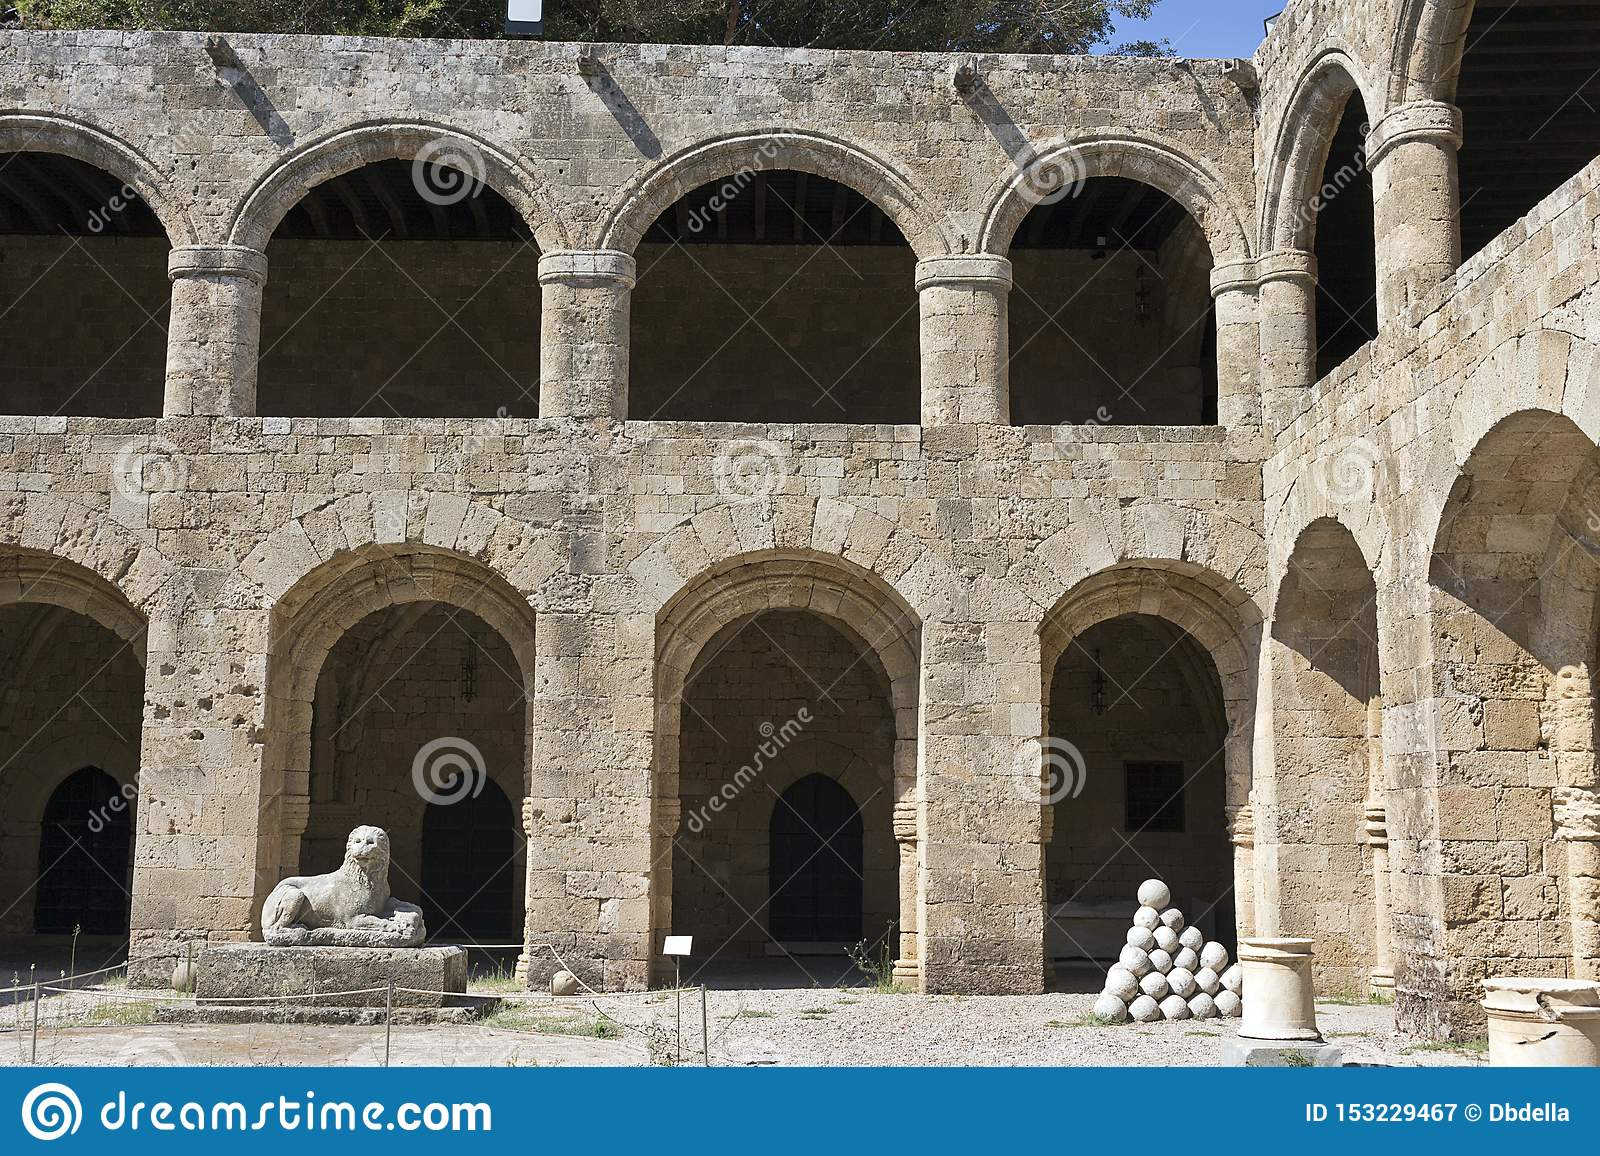 Rhodes Old City - Archaeological museum, old Hospital of the Knights. Courtyard surrounded by a galleries, lion statue and stacks